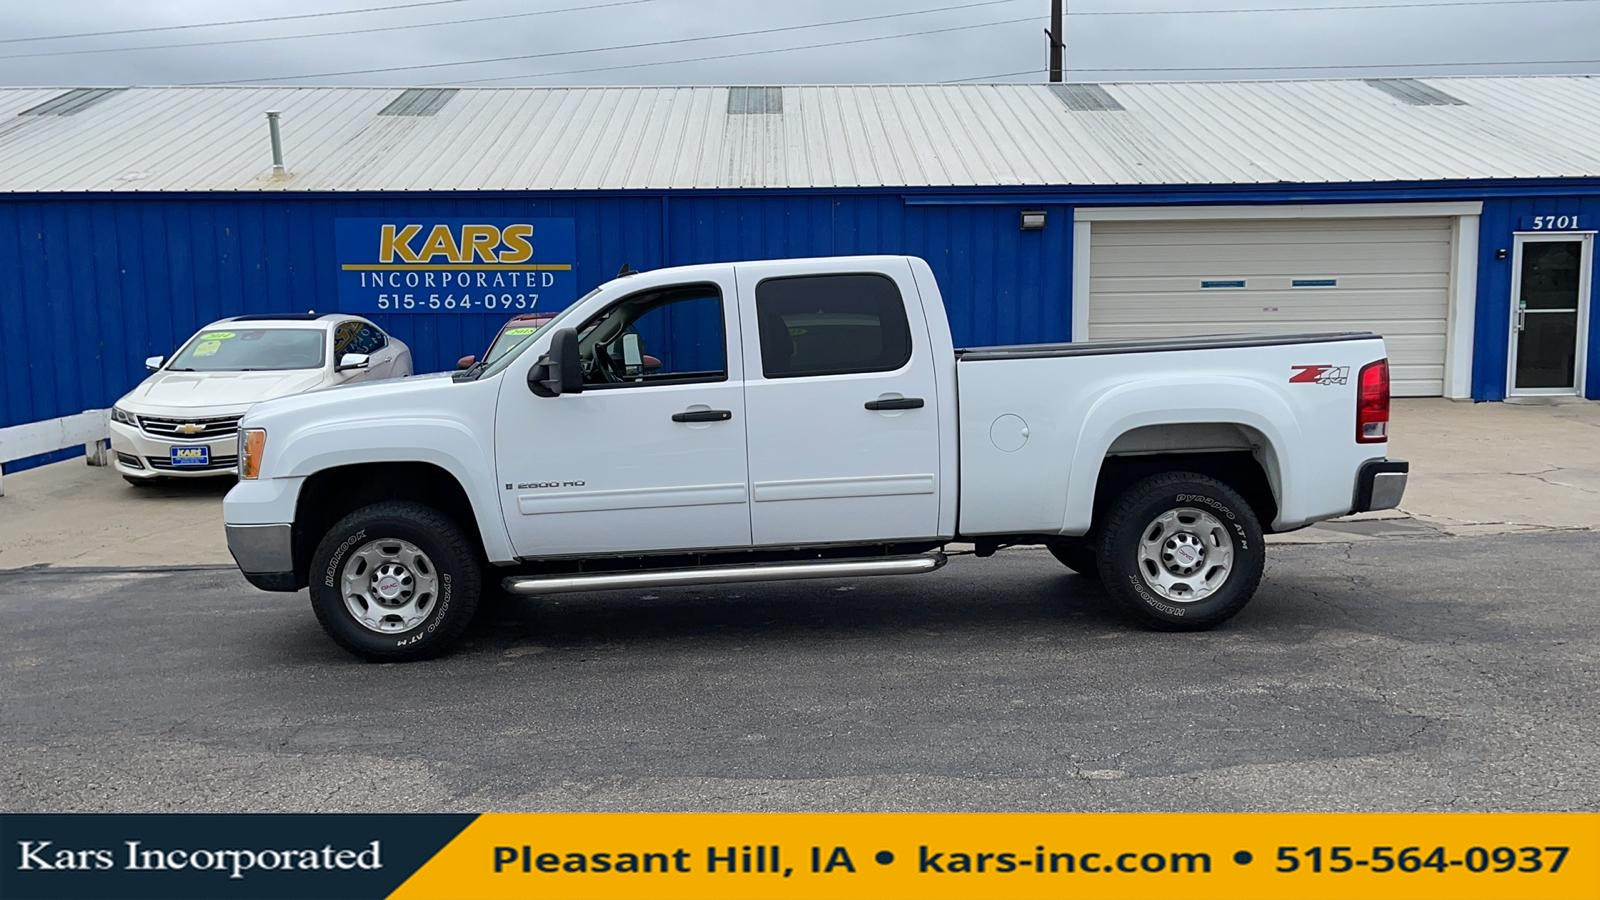 2009 GMC Sierra 2500HD 2500 SLE 4WD Crew Cab  - 918381P  - Kars Incorporated